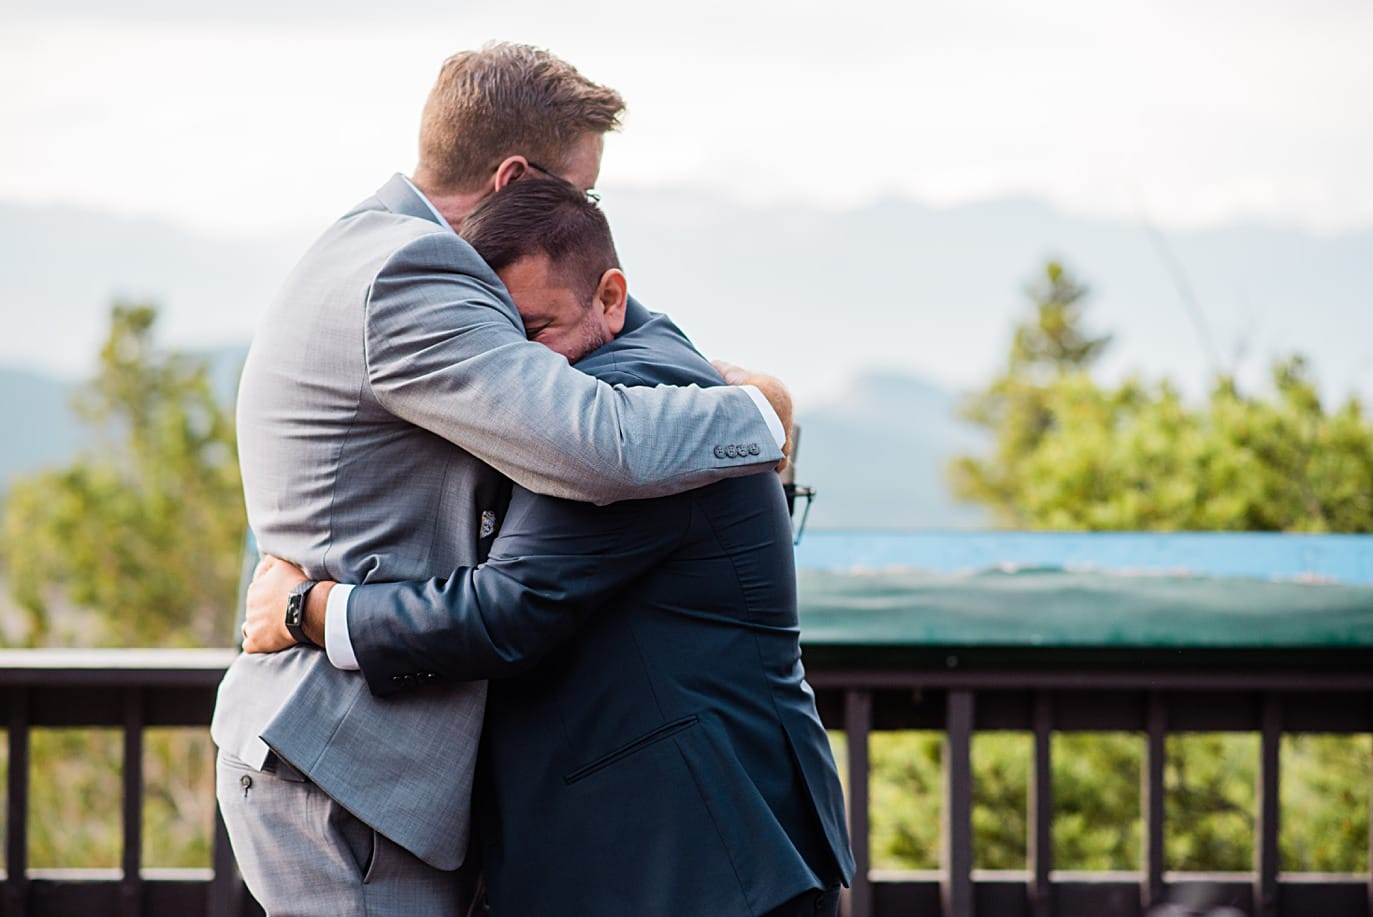 grooms hug after ceremony at Panorama point during LGBTQ wedding by Colorado LGBT photographer Jennie Crate